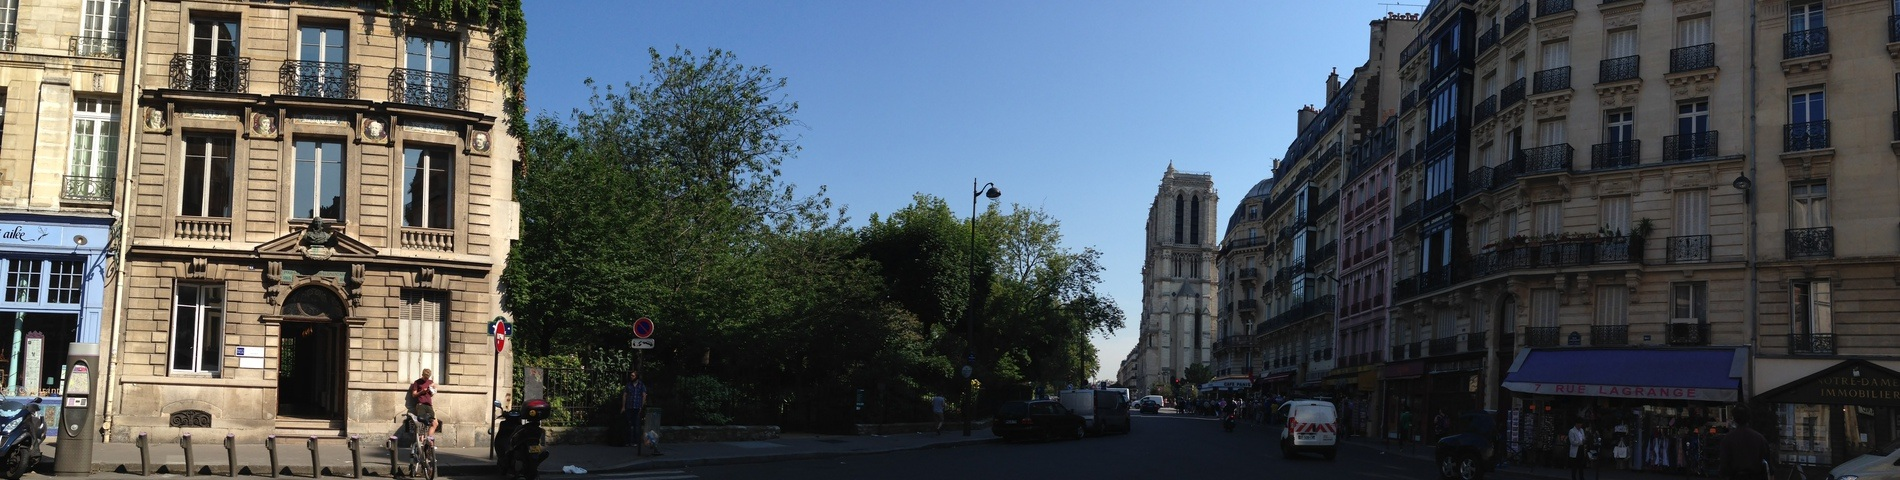 France Langue Paris Notre Dame picture 1